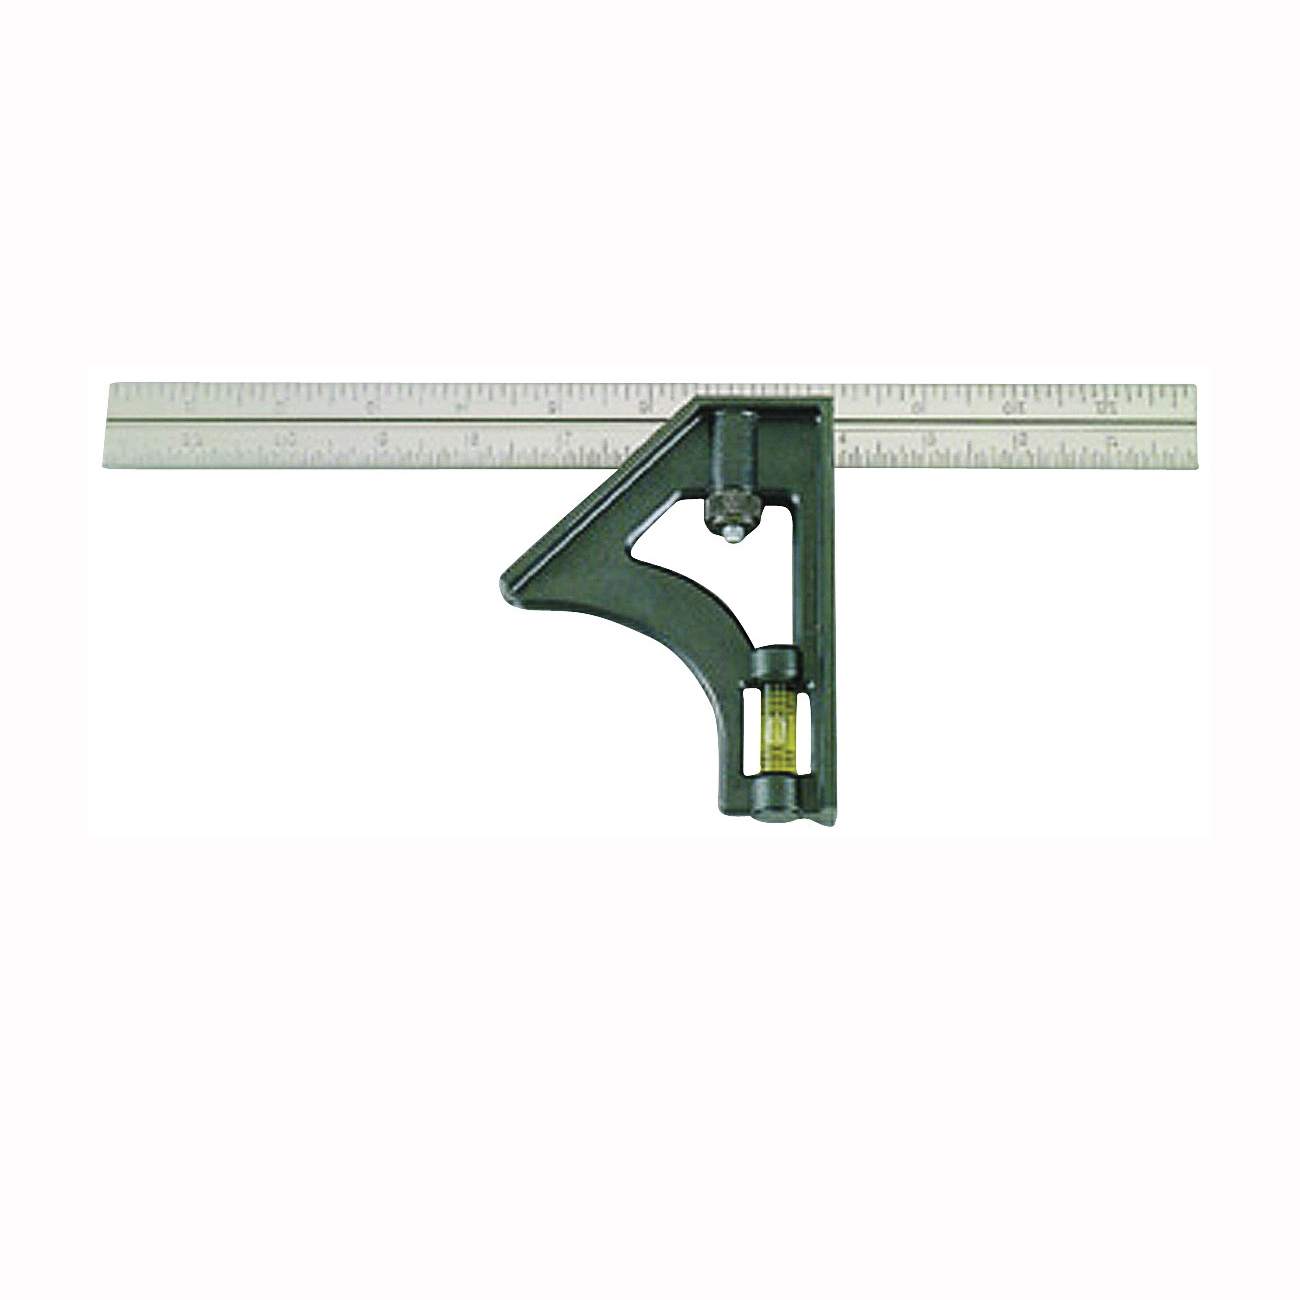 Picture of Johnson 415 Combination Square, 12 in L Blade, SAE Graduation, Stainless Steel Blade